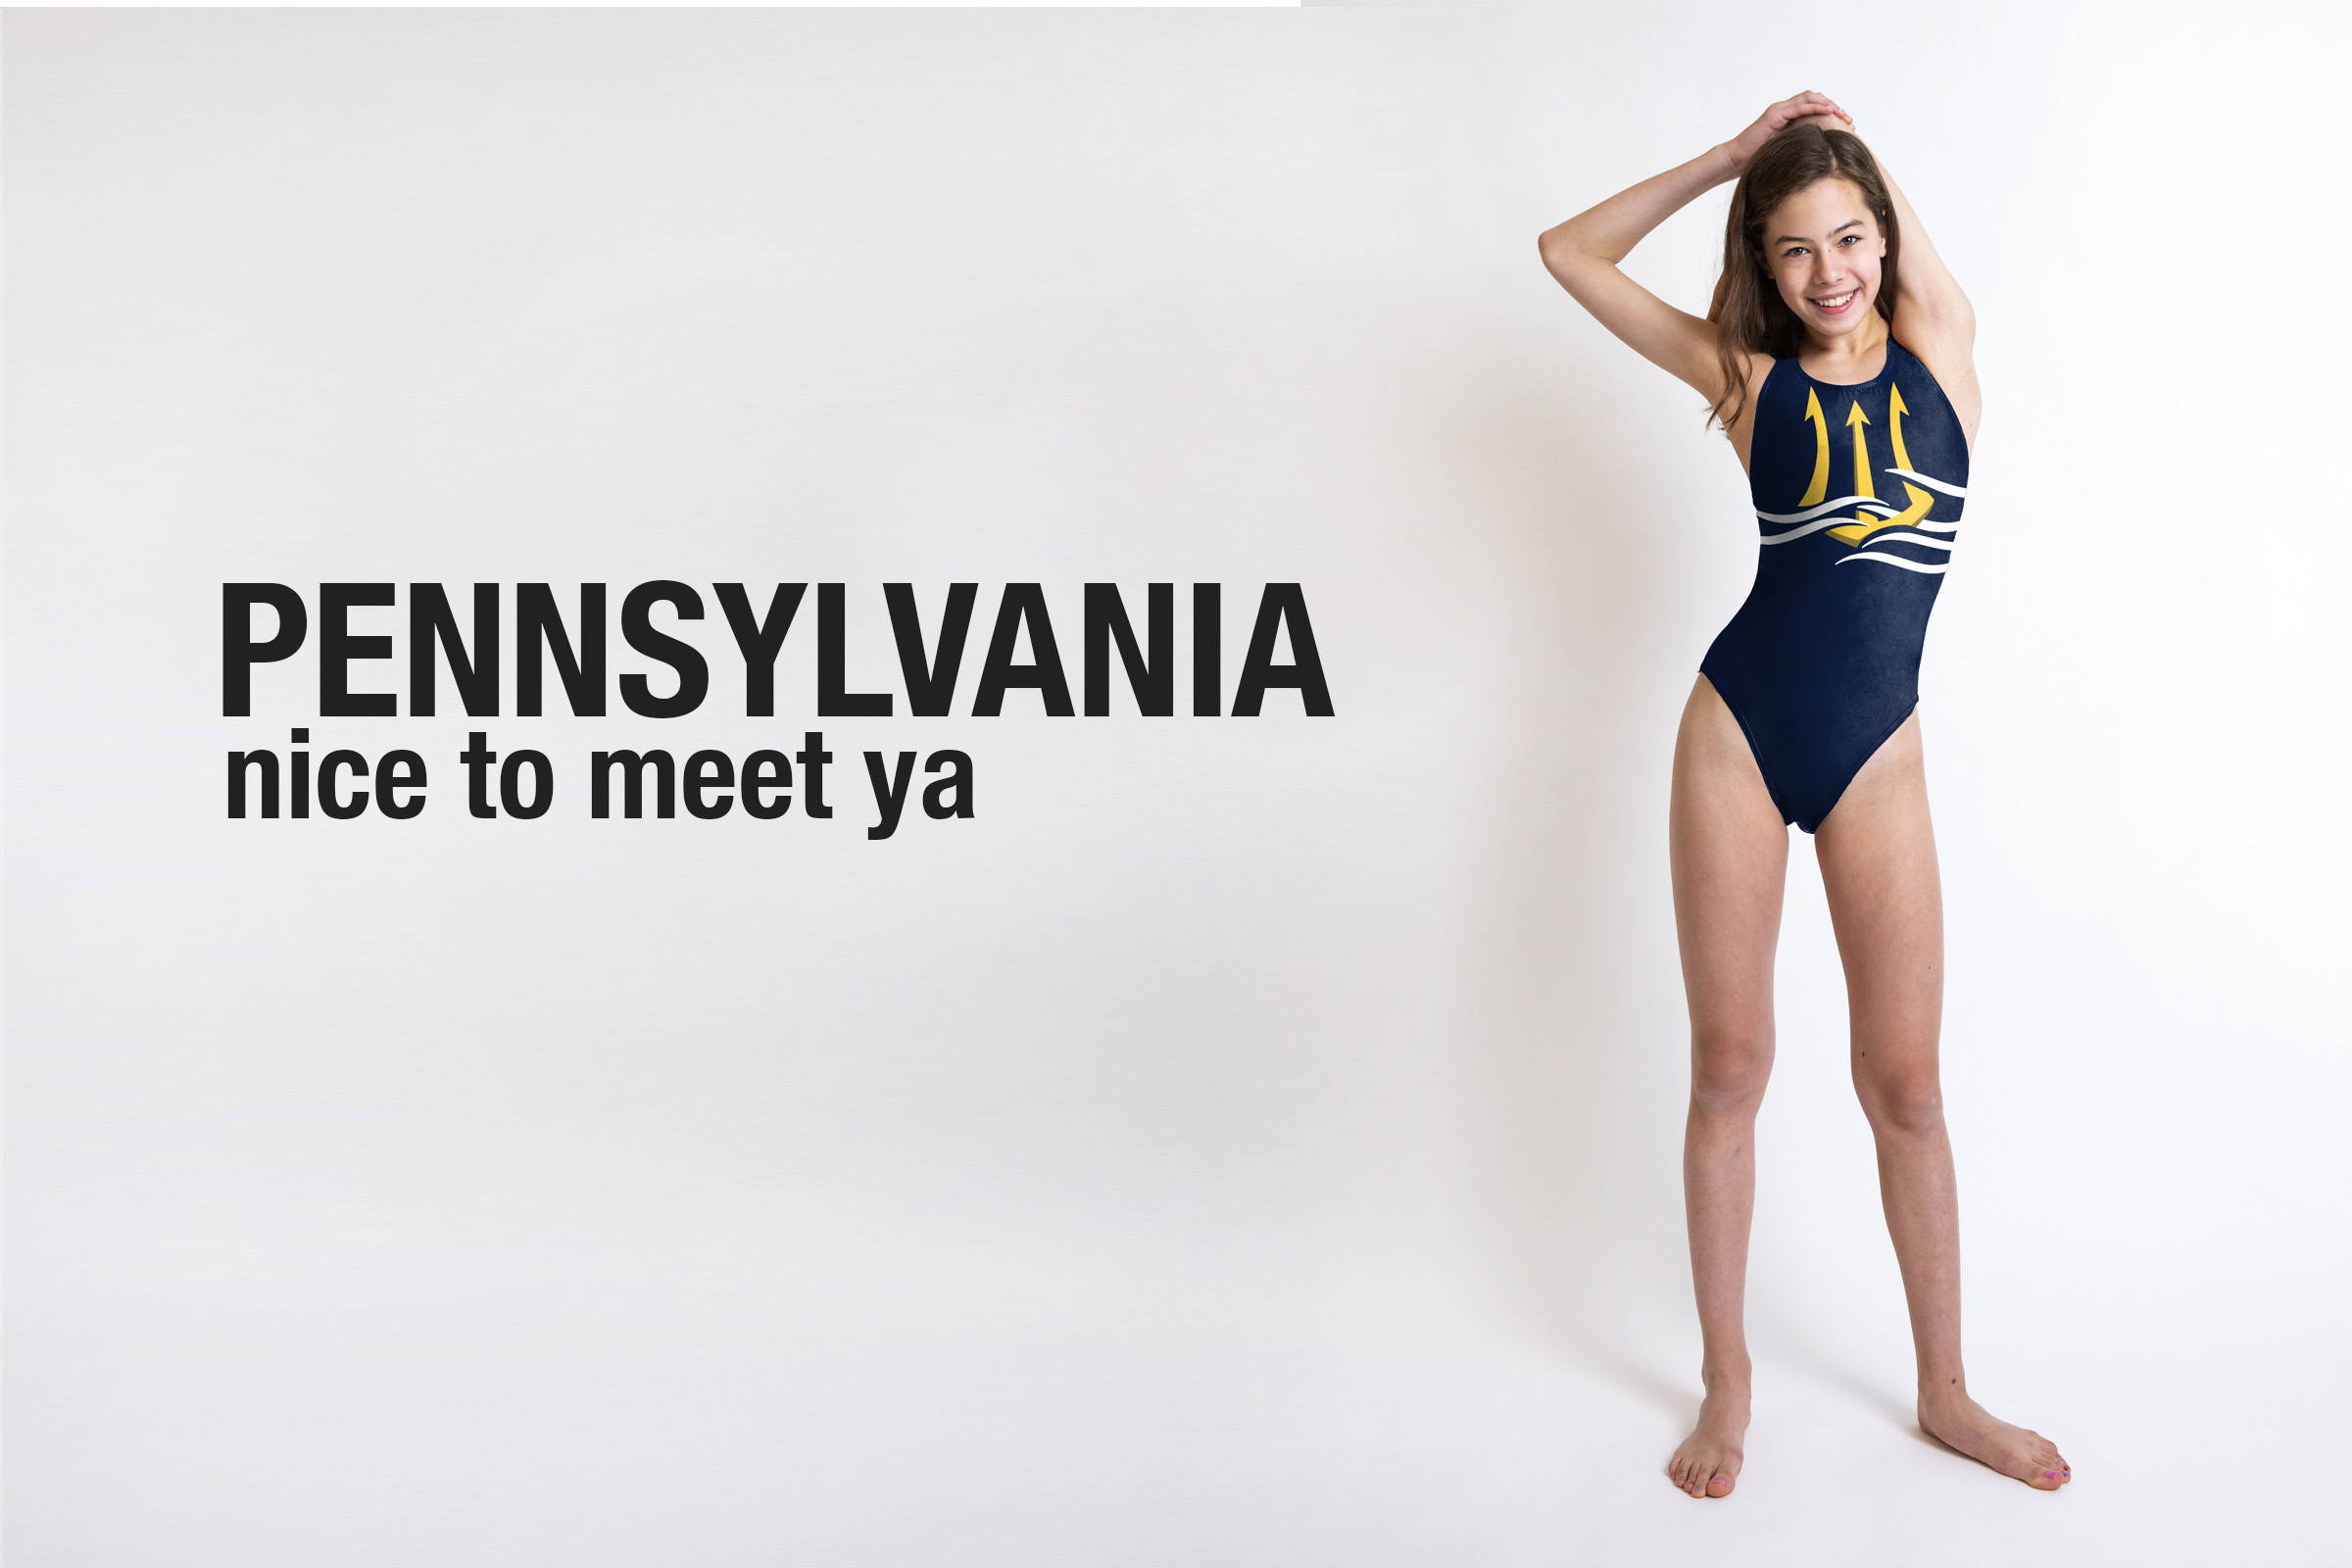 custom swimsuits for teams and custom team swimsuits